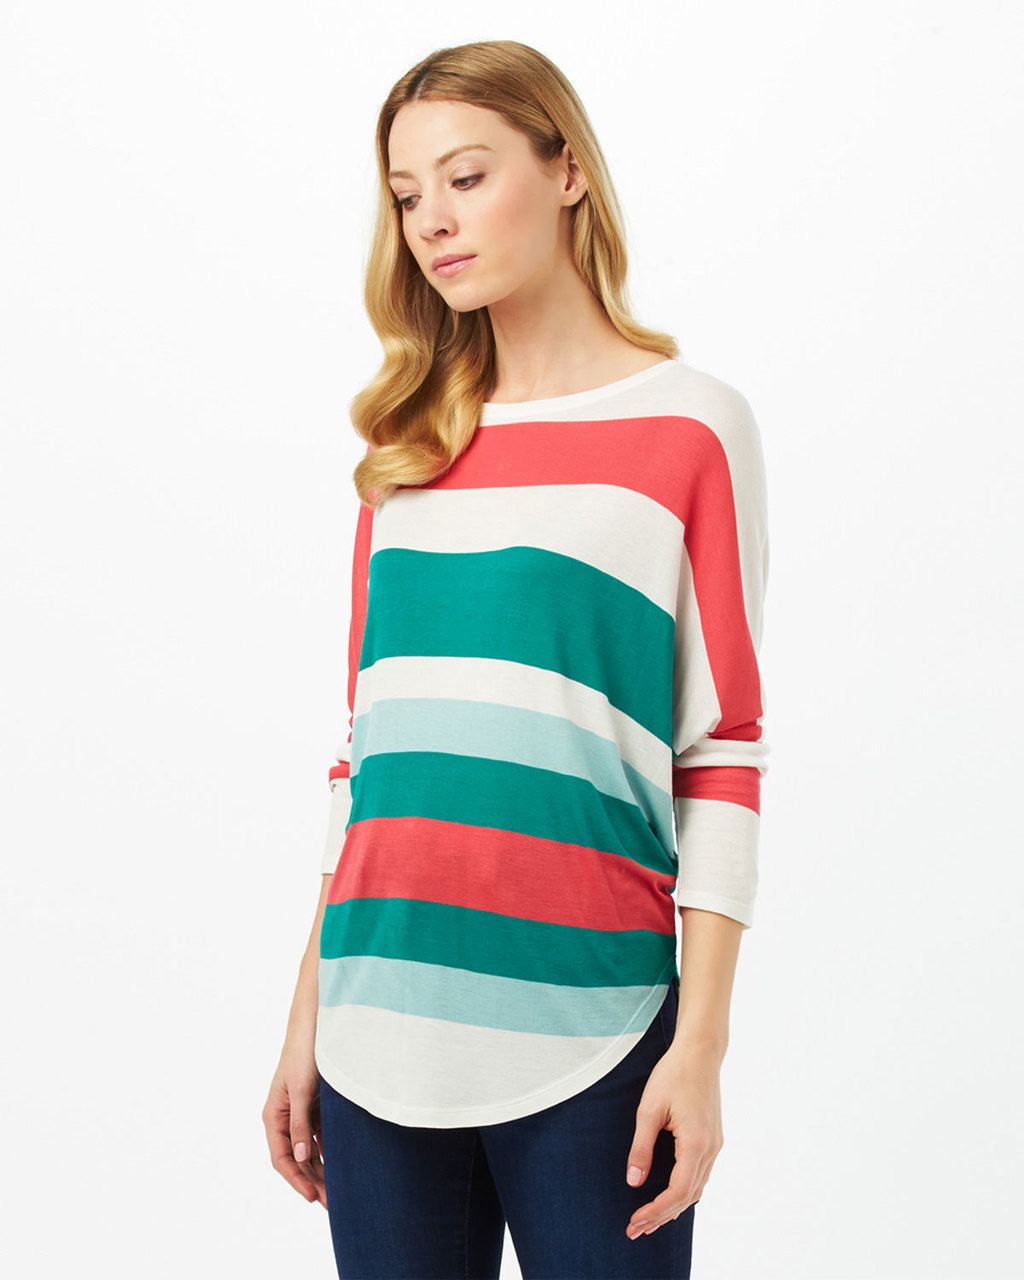 Catrina Multi Stripe Top - pattern: horizontal stripes; length: below the bottom; style: t-shirt; predominant colour: mint green; secondary colour: coral; occasions: casual, creative work; fibres: viscose/rayon - 100%; fit: loose; neckline: crew; sleeve length: long sleeve; sleeve style: standard; pattern type: fabric; pattern size: standard; texture group: jersey - stretchy/drapey; multicoloured: multicoloured; season: s/s 2016; wardrobe: highlight